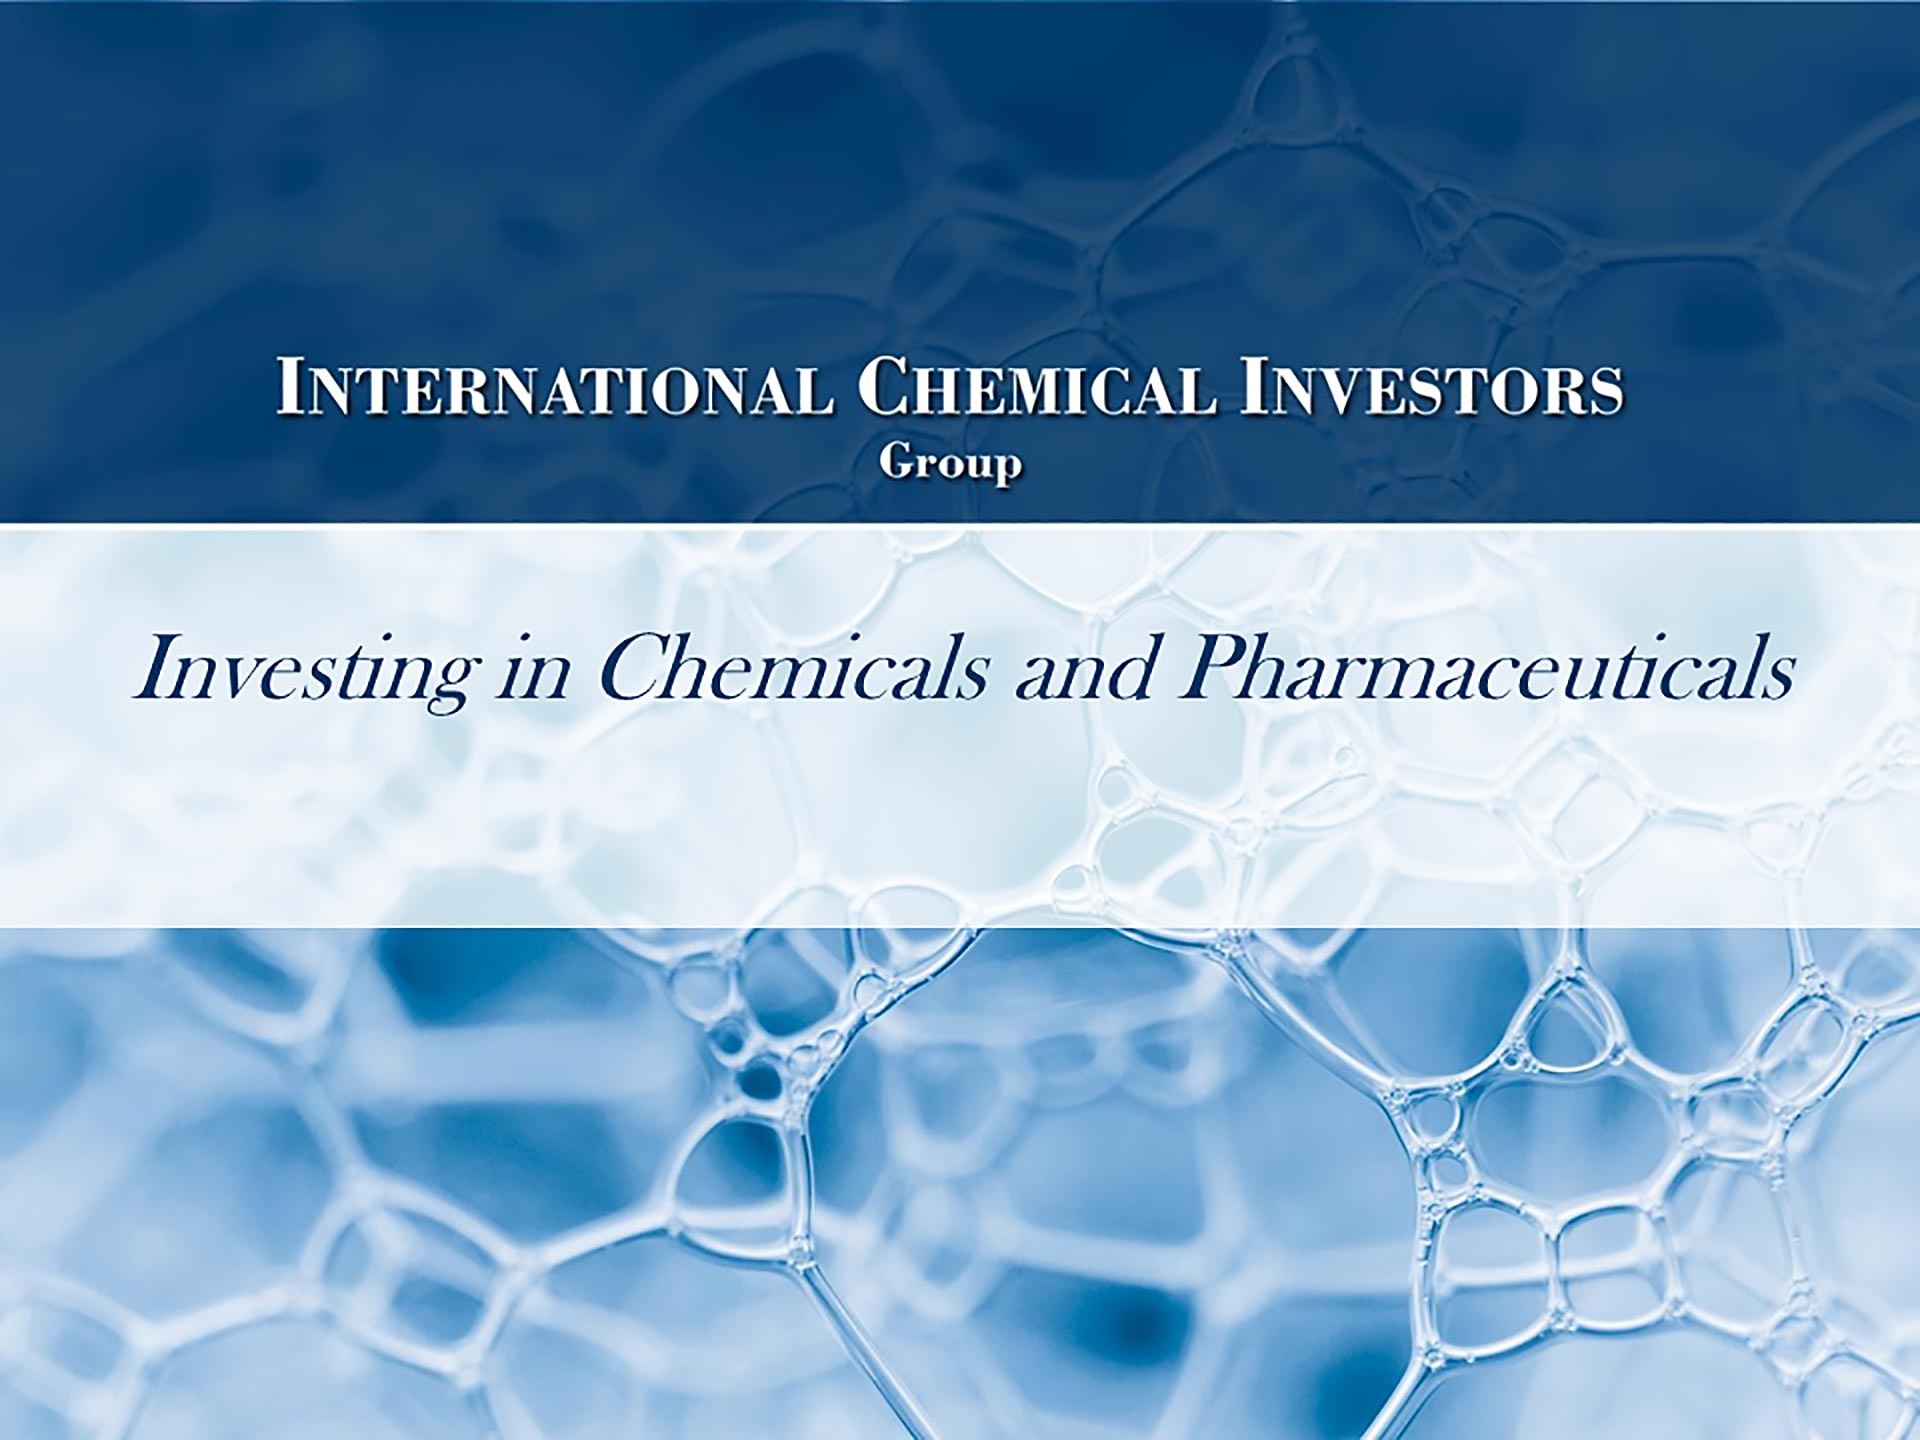 INTERNATIONAL CHEMICAL INVESTORS S.E.